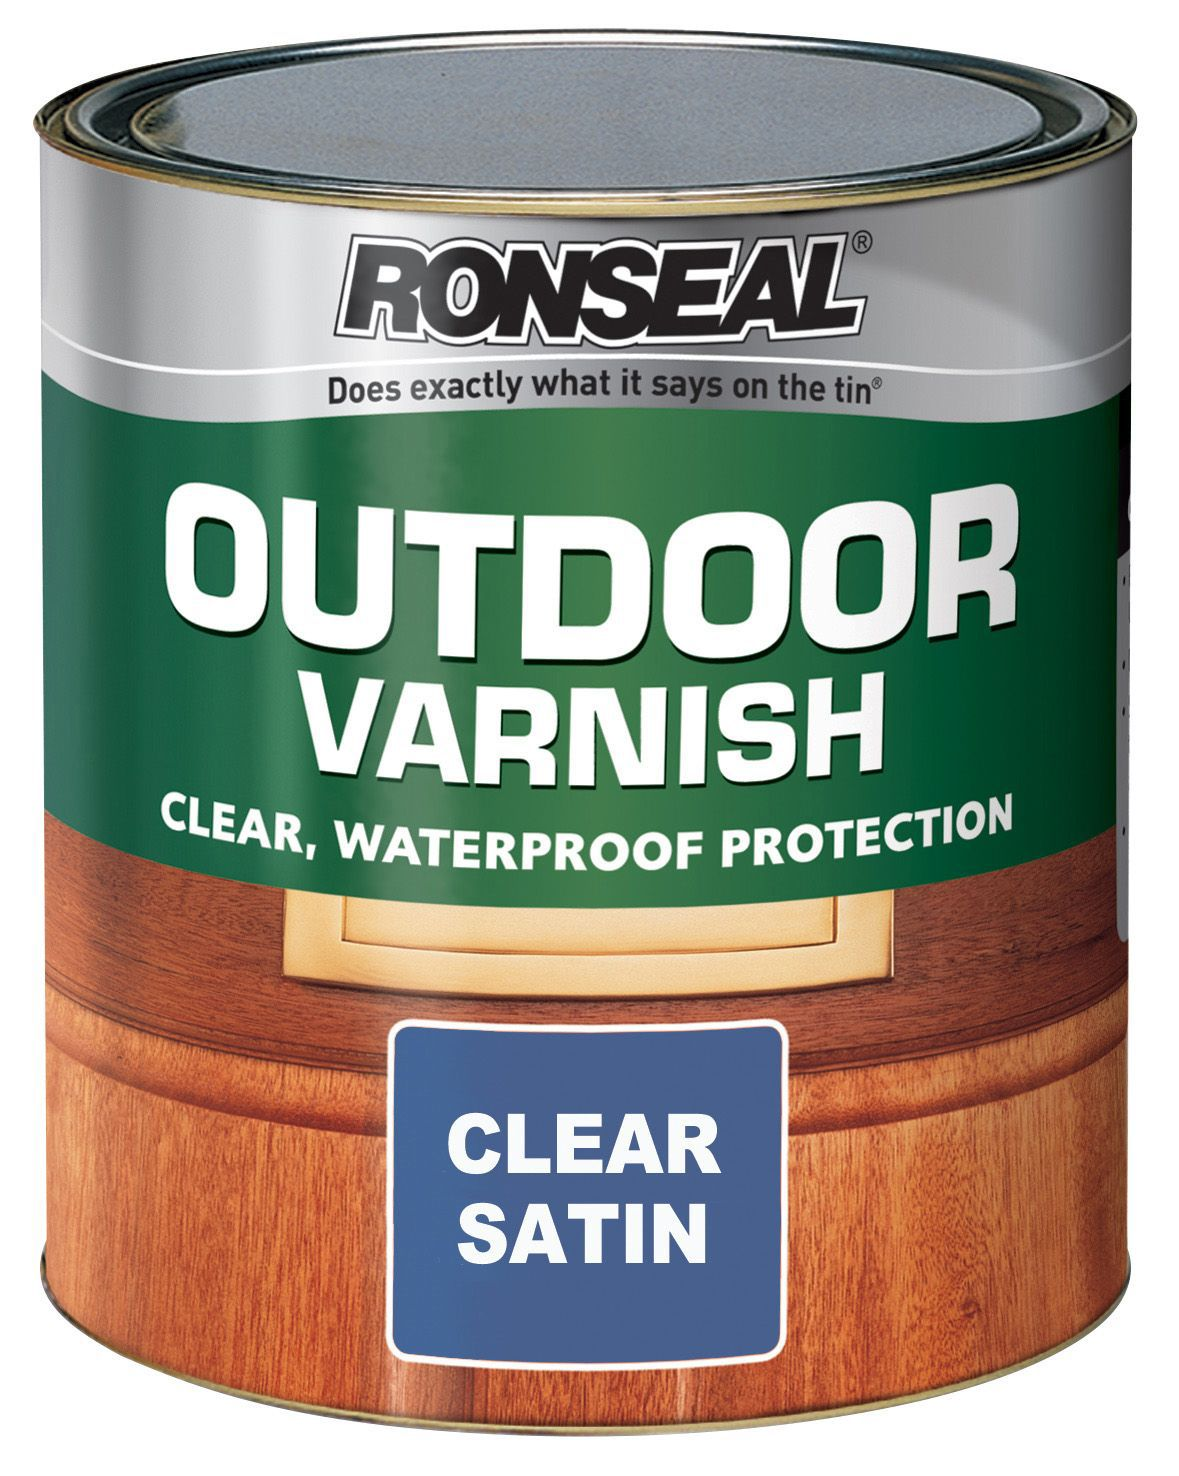 Ronseal Clear Satin Wood varnish, 2.5L | Departments | DIY at B&Q